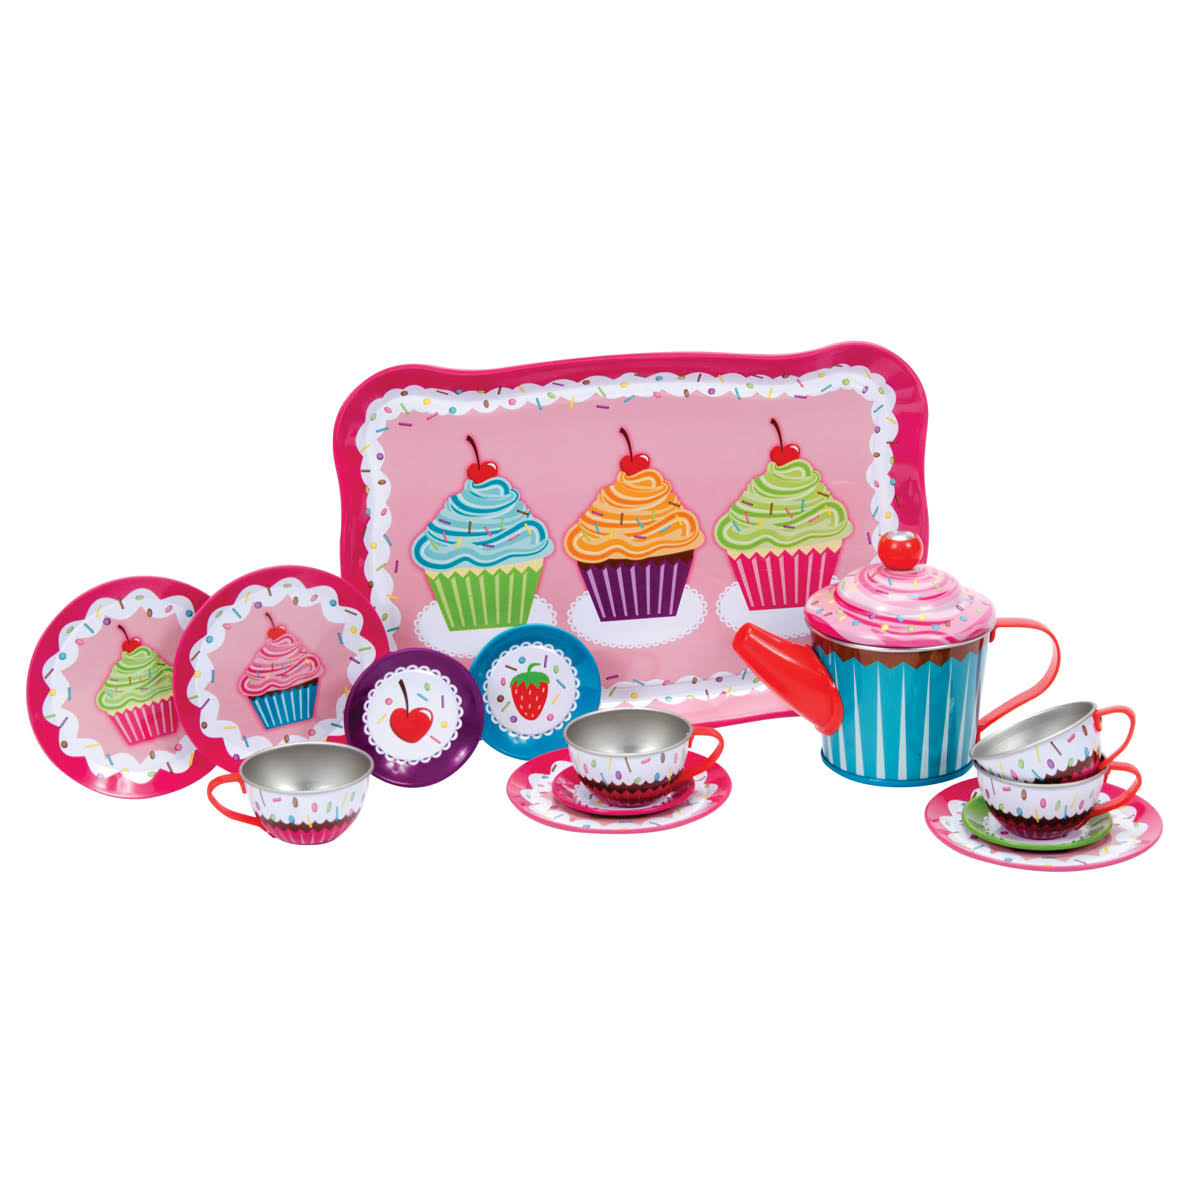 Schylling Cupcakes Tea Set